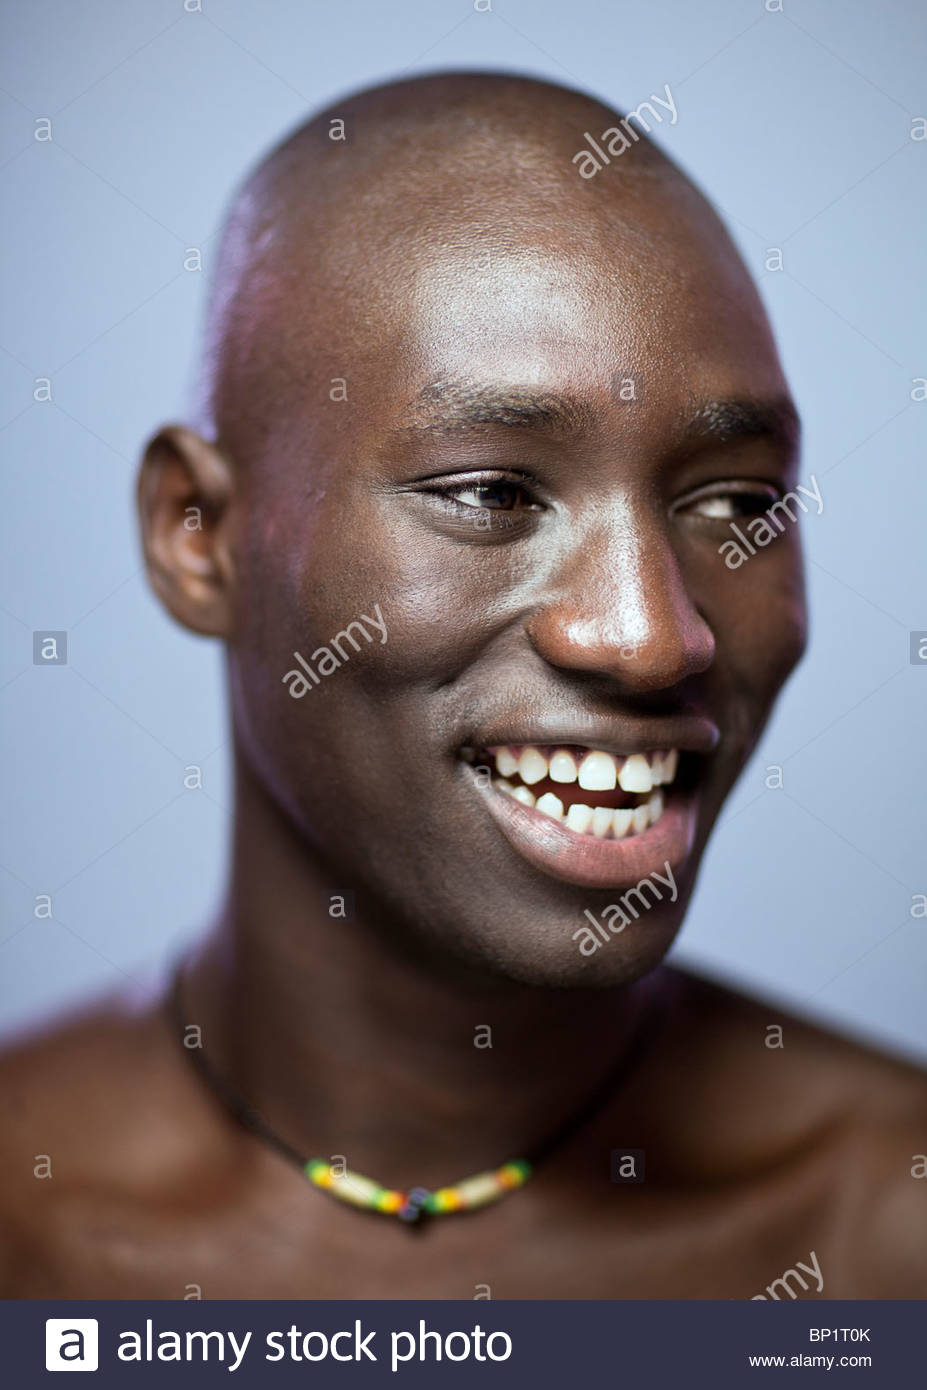 Close-up Portrait of African Man Smiling - Stock Image